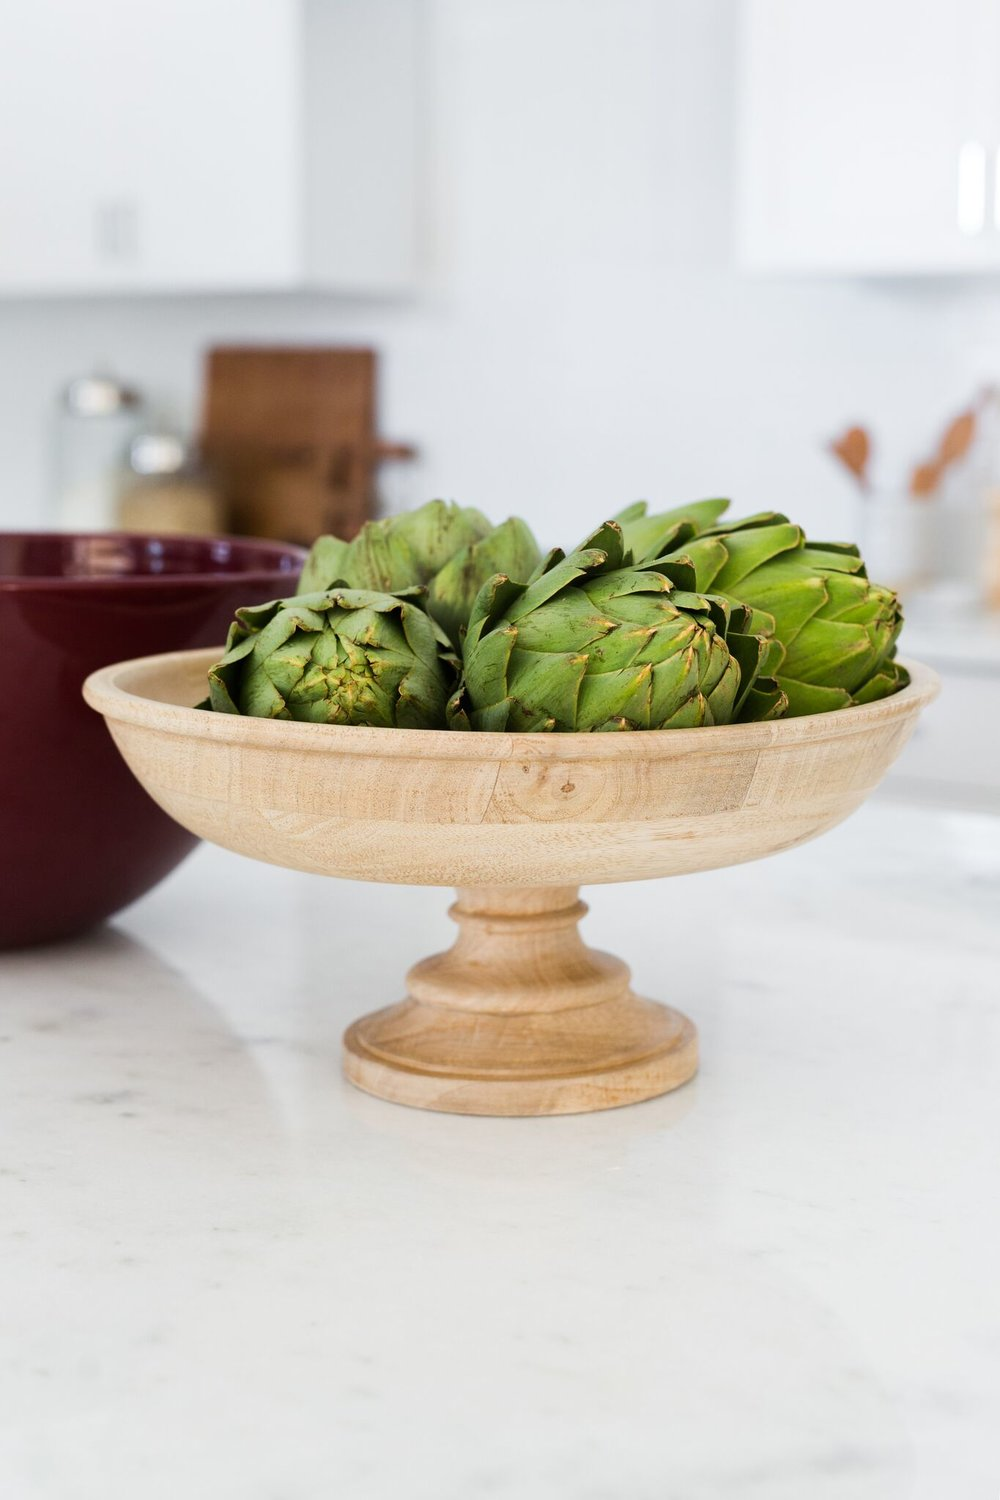 Bowl of artichokes on kitchen counter